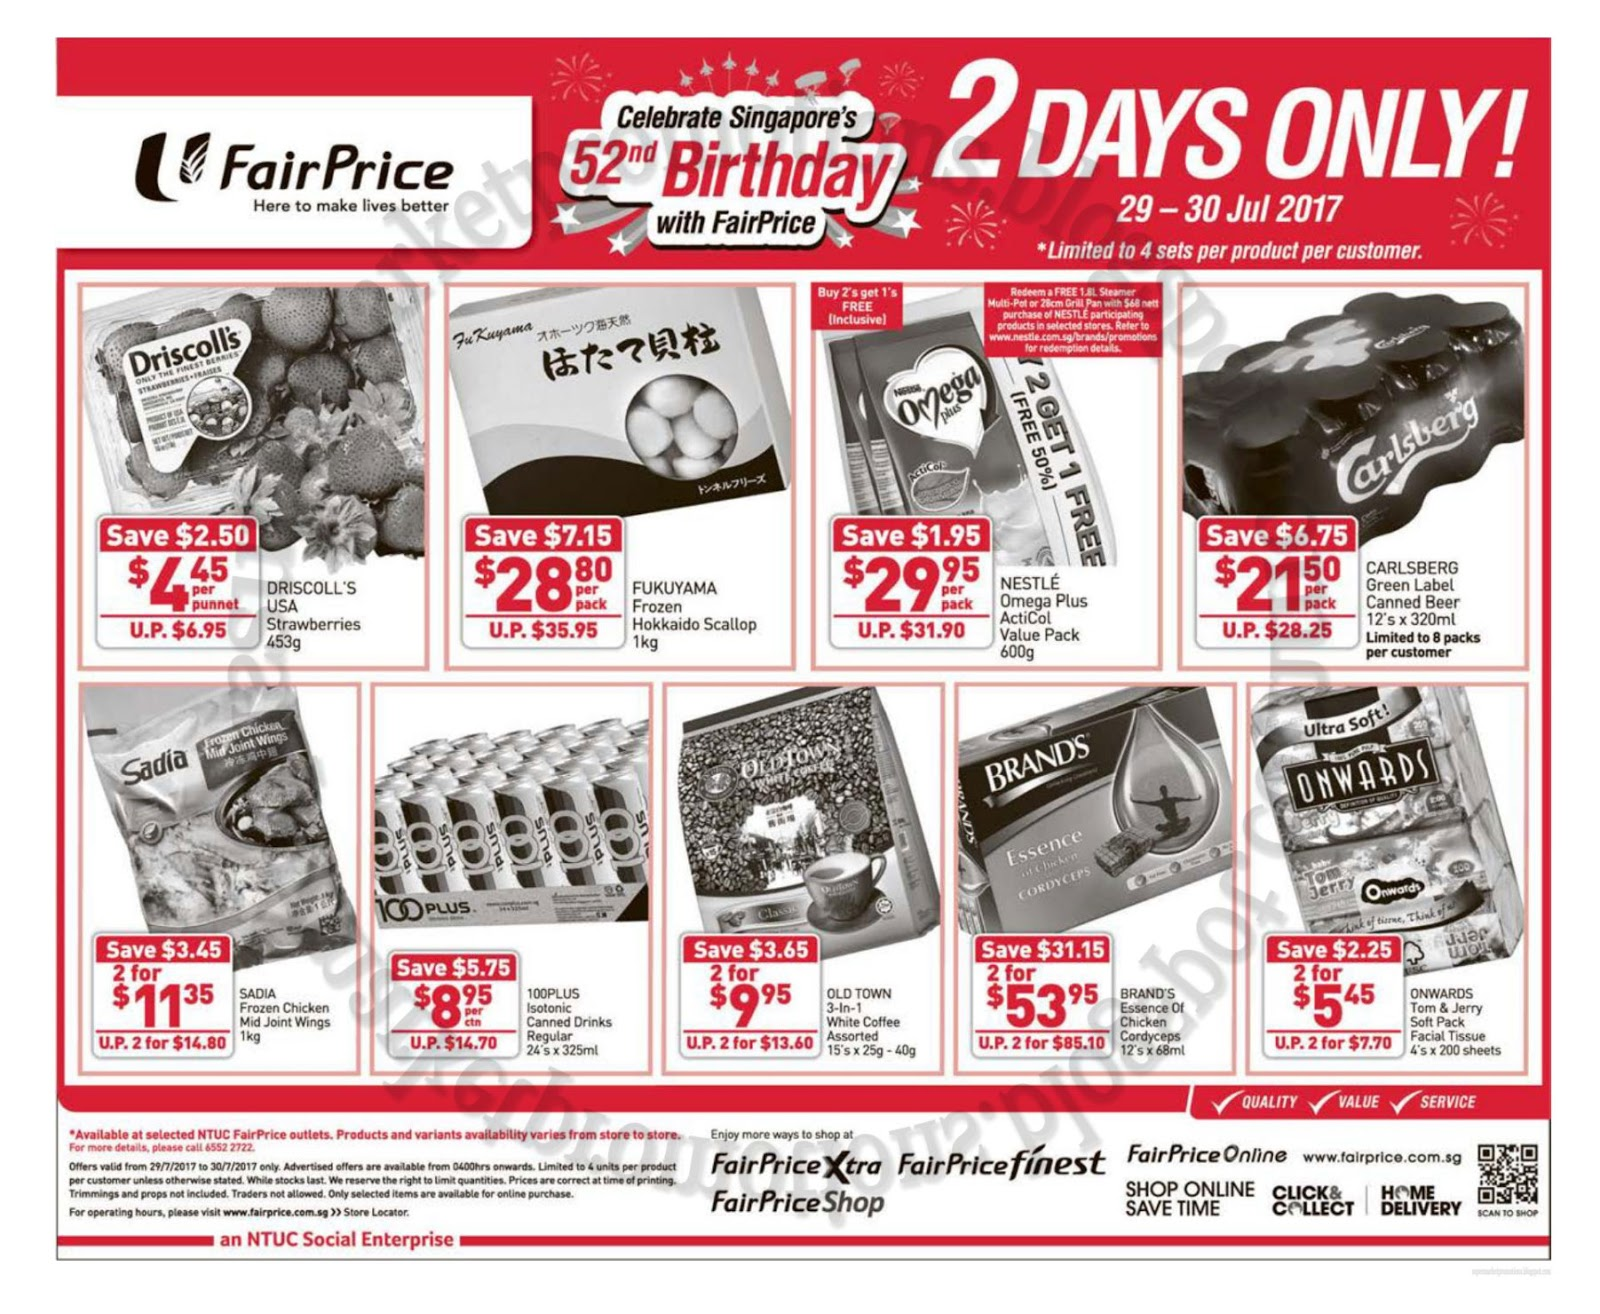 NTUC FairPrice National Day Promotions 29 - 30 July 2017